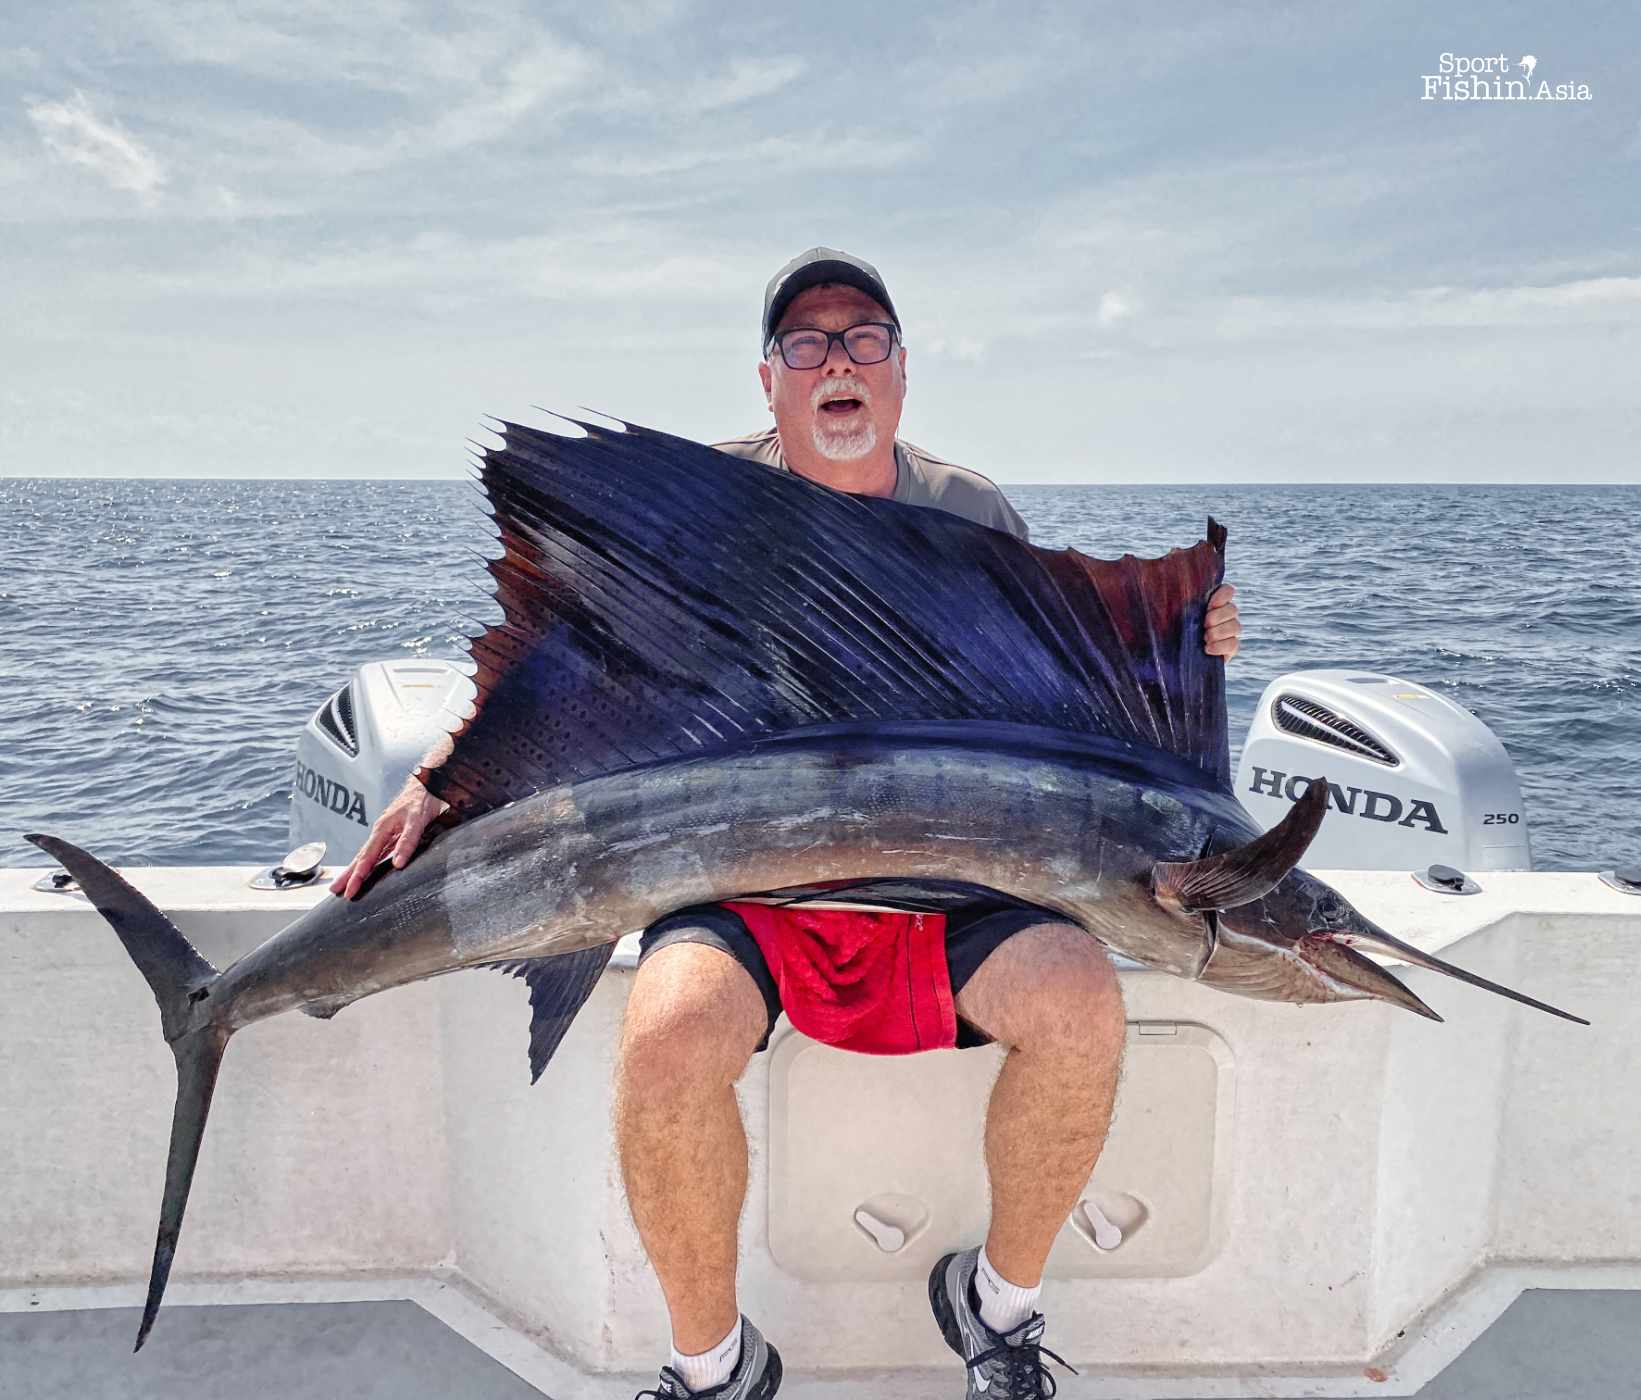 This big sailfish gave Brian a breathtaking experience - literally